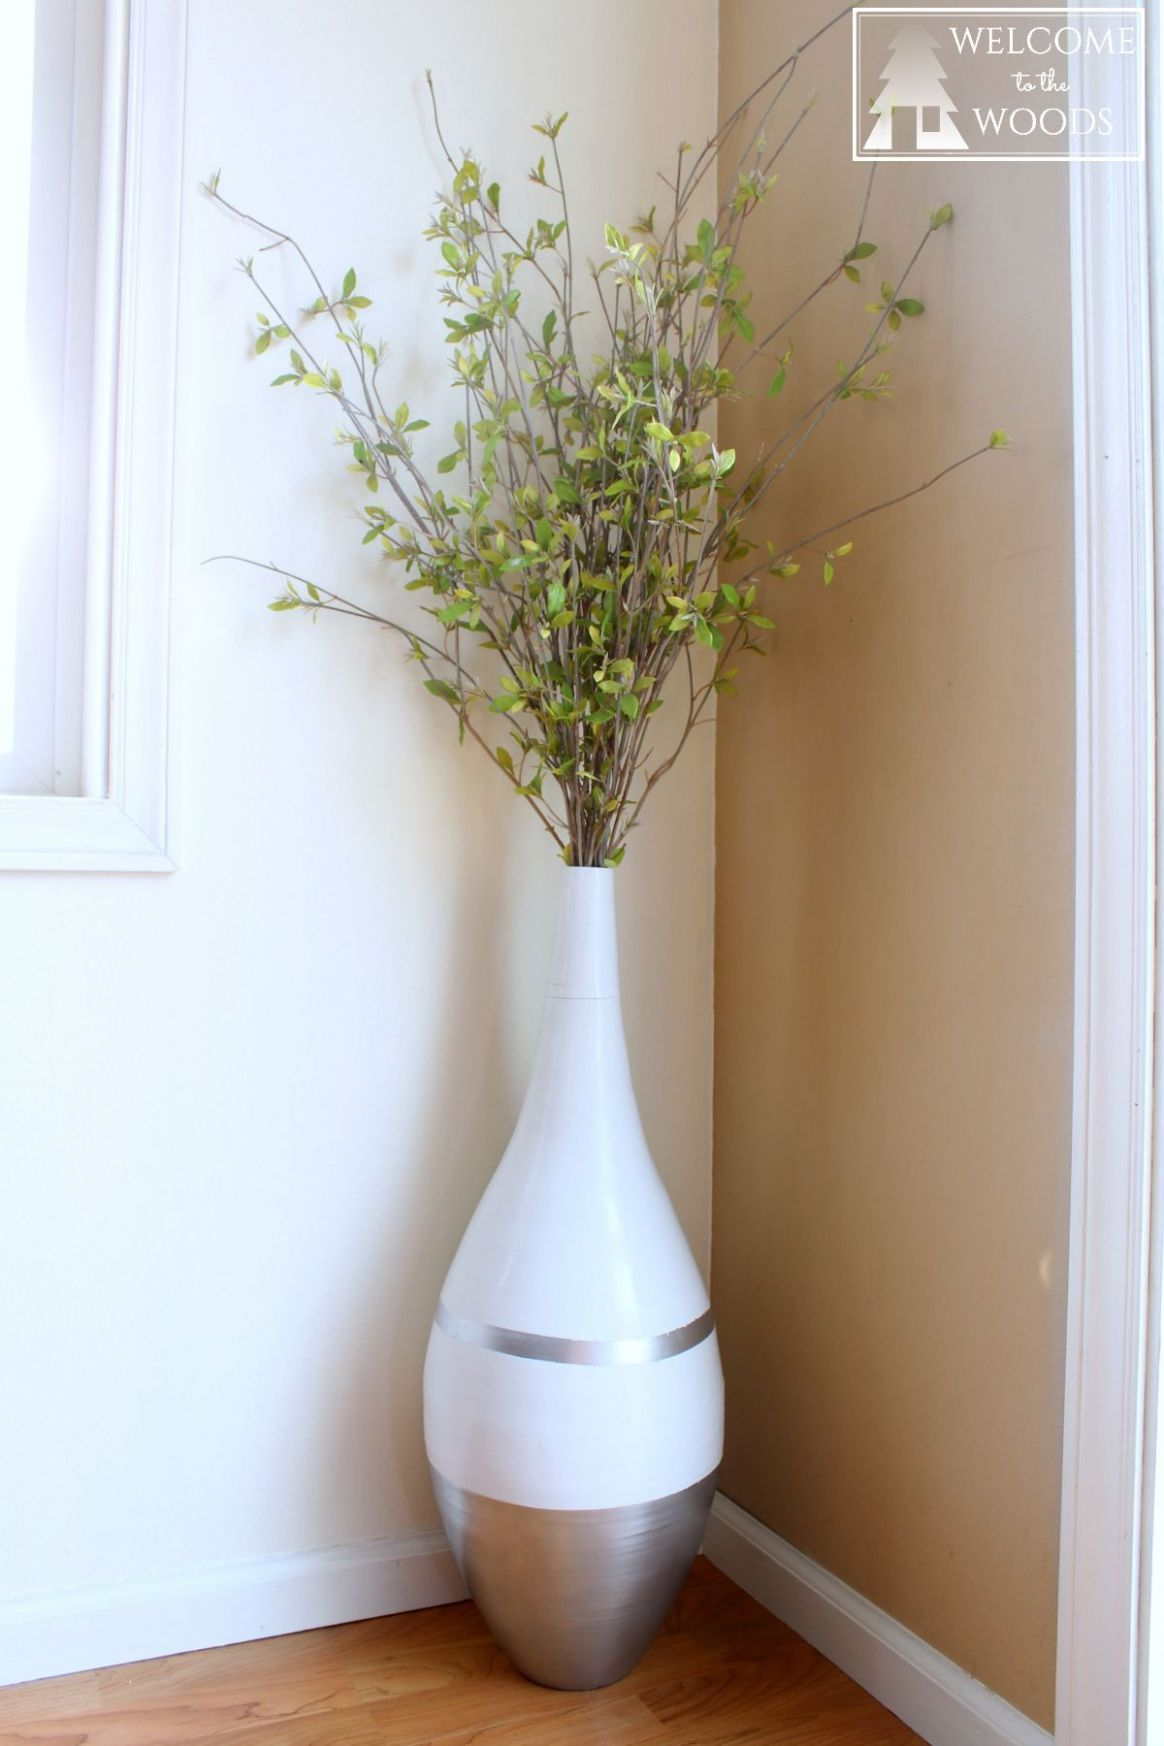 Vase Refresh for Dining Room-ORC Week 8 (With images) | Floor vase ..